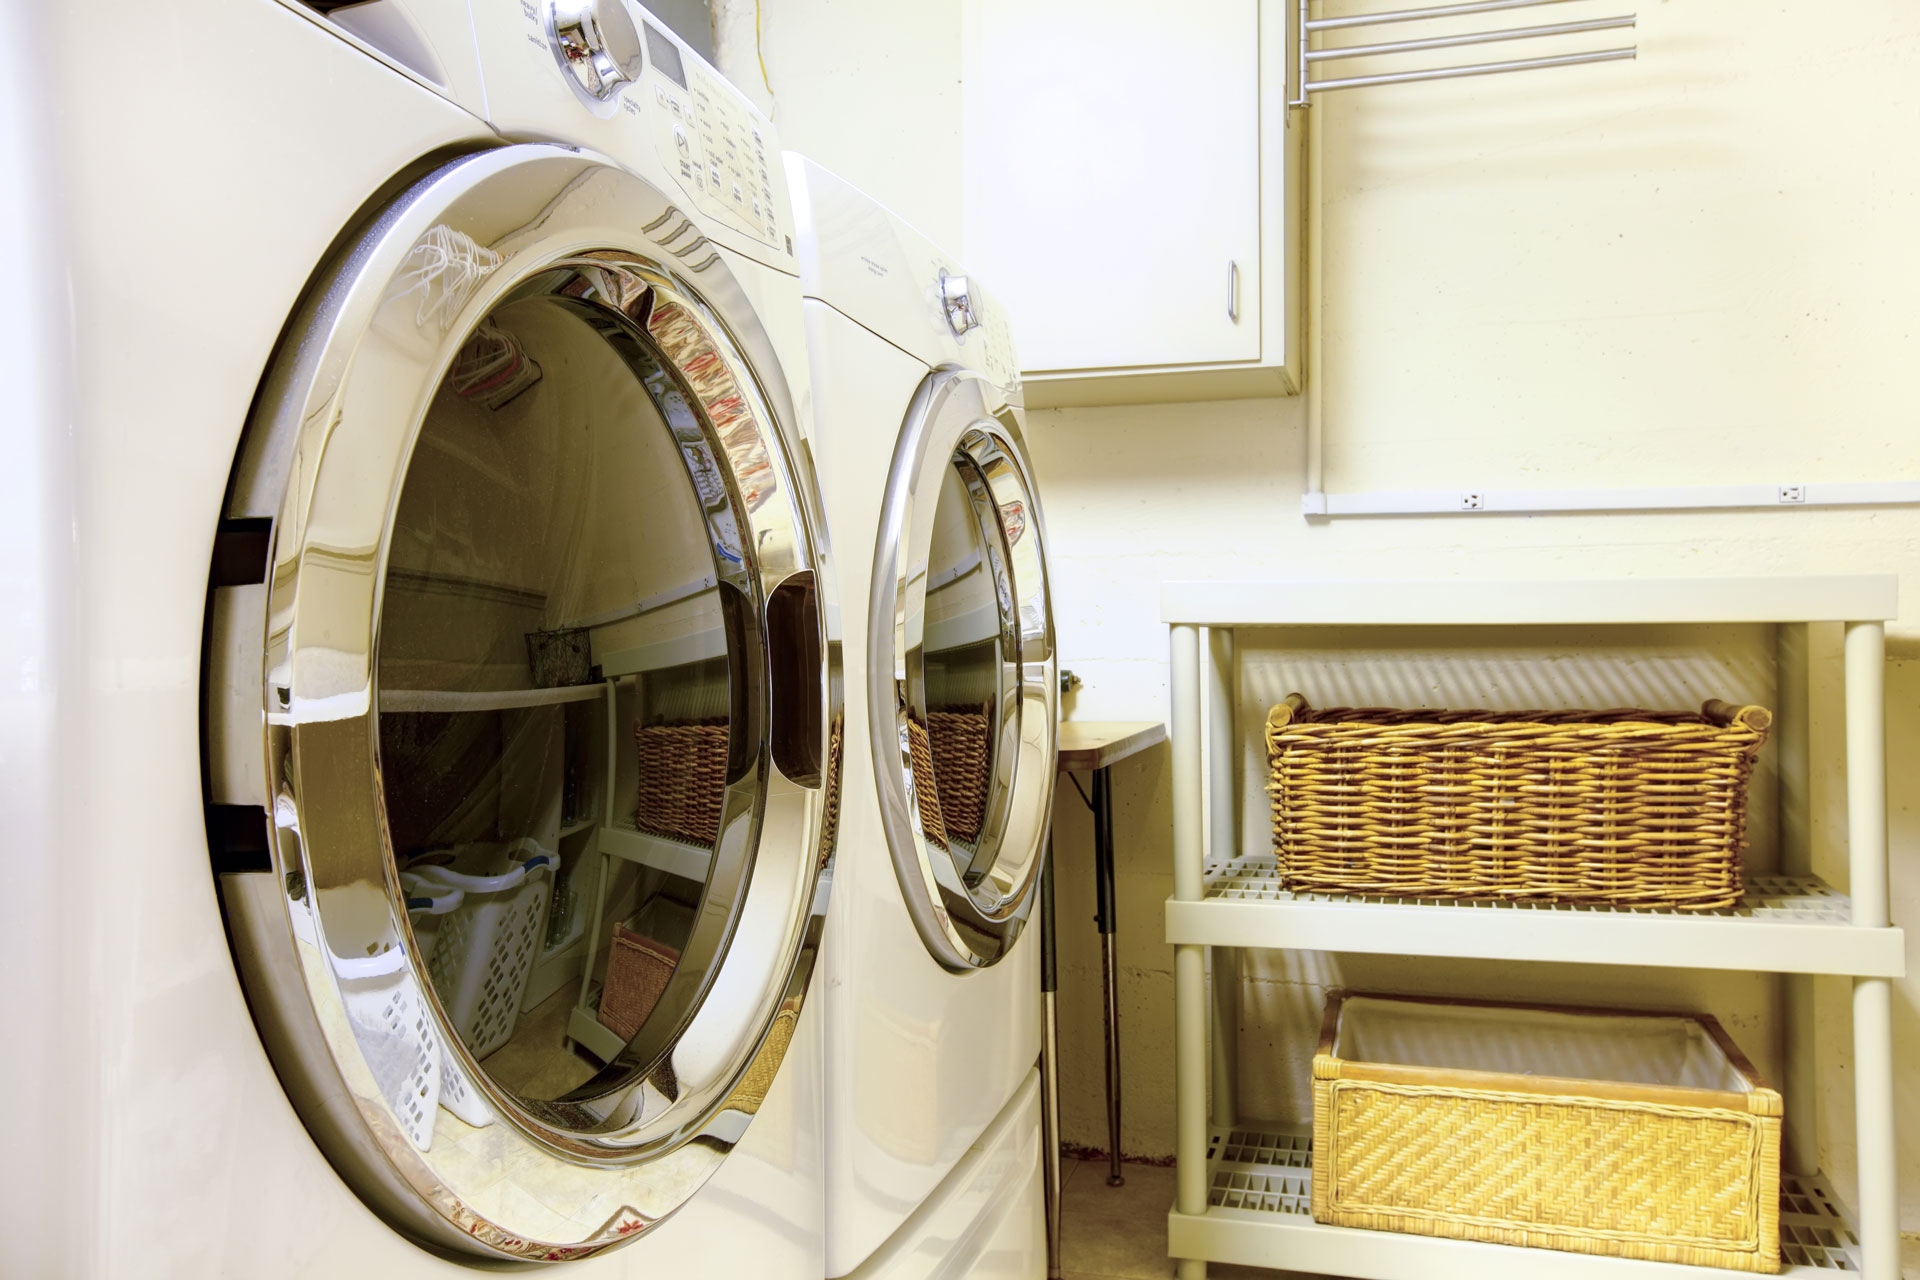 How To Organize A Laundry Room In 6 Simple Steps